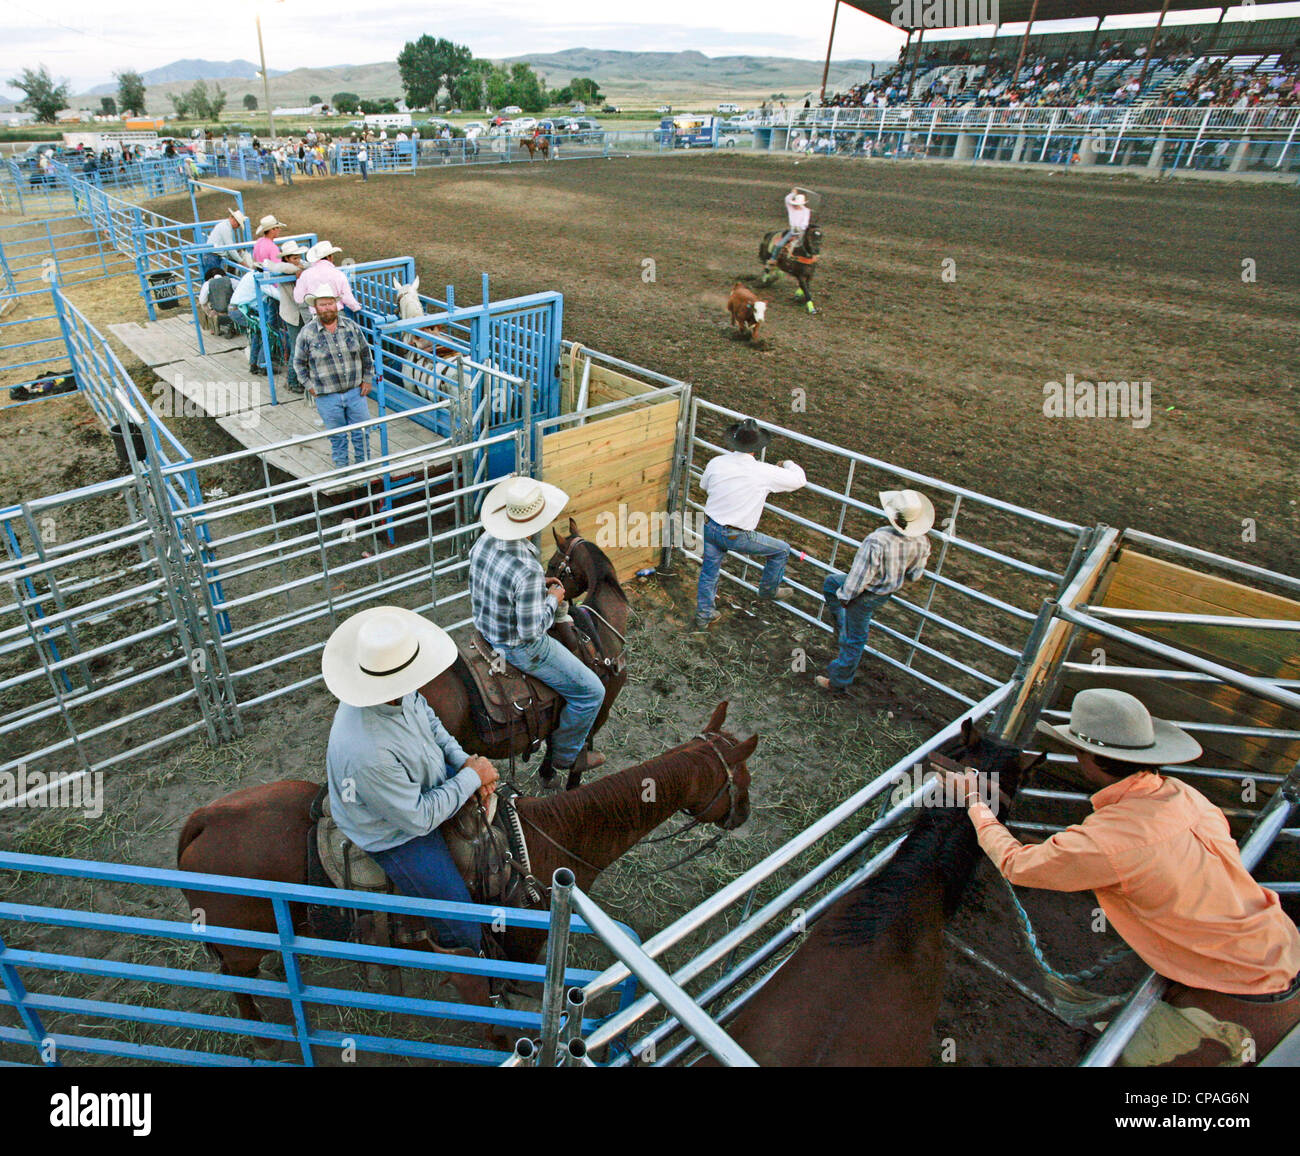 USA, Idaho, Fort Hall. Steer roping event of the rodeo held during the annual Shoshone-Bannock Festival. - Stock Image